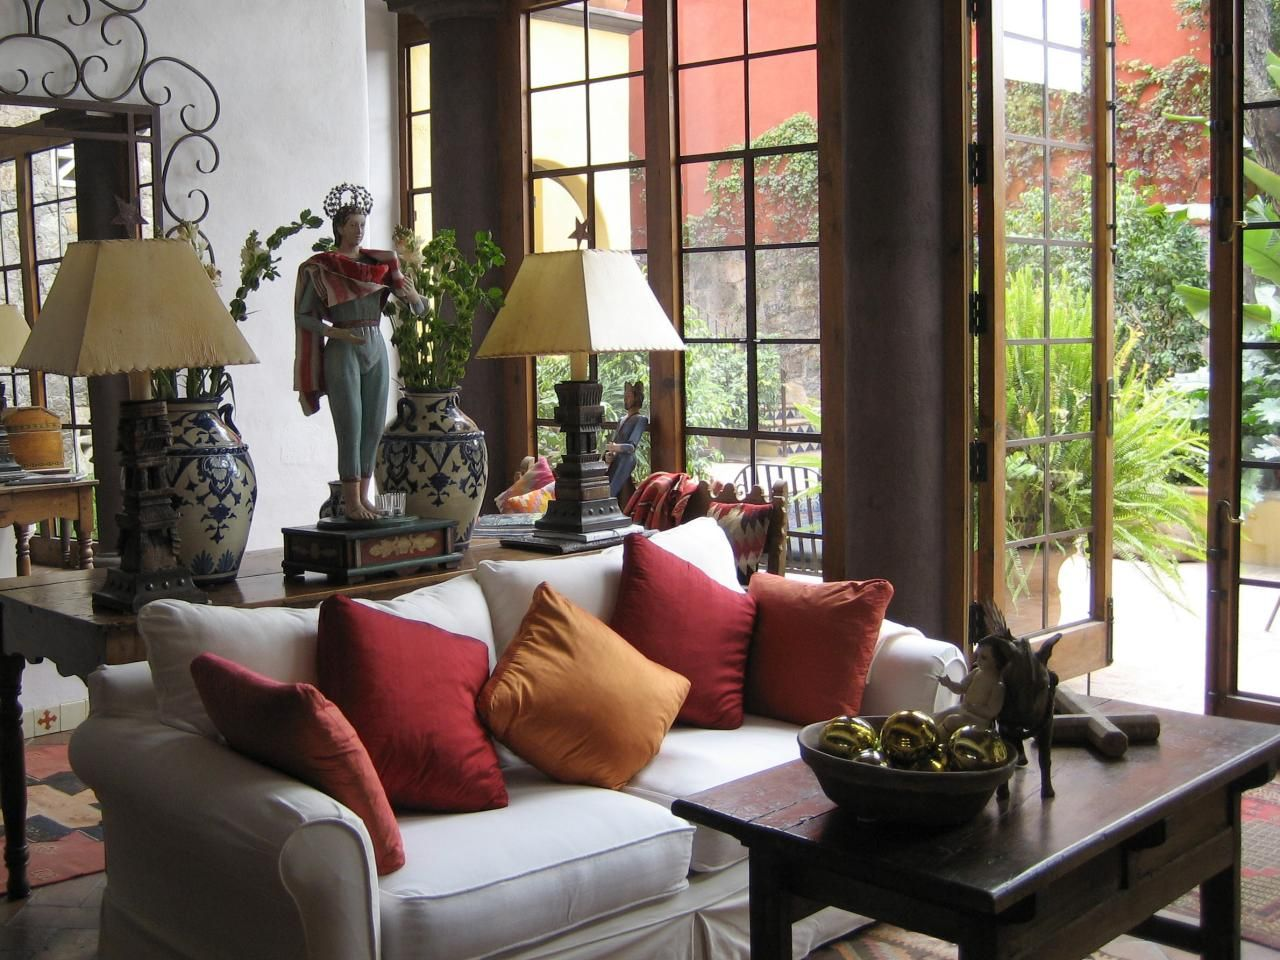 With French Doors, The Great Room In This Mexican Home Was Already Off To A  Good Start, But The Vibrant Splashes Of Color, Matching Lamps And Oversized  Iron ...